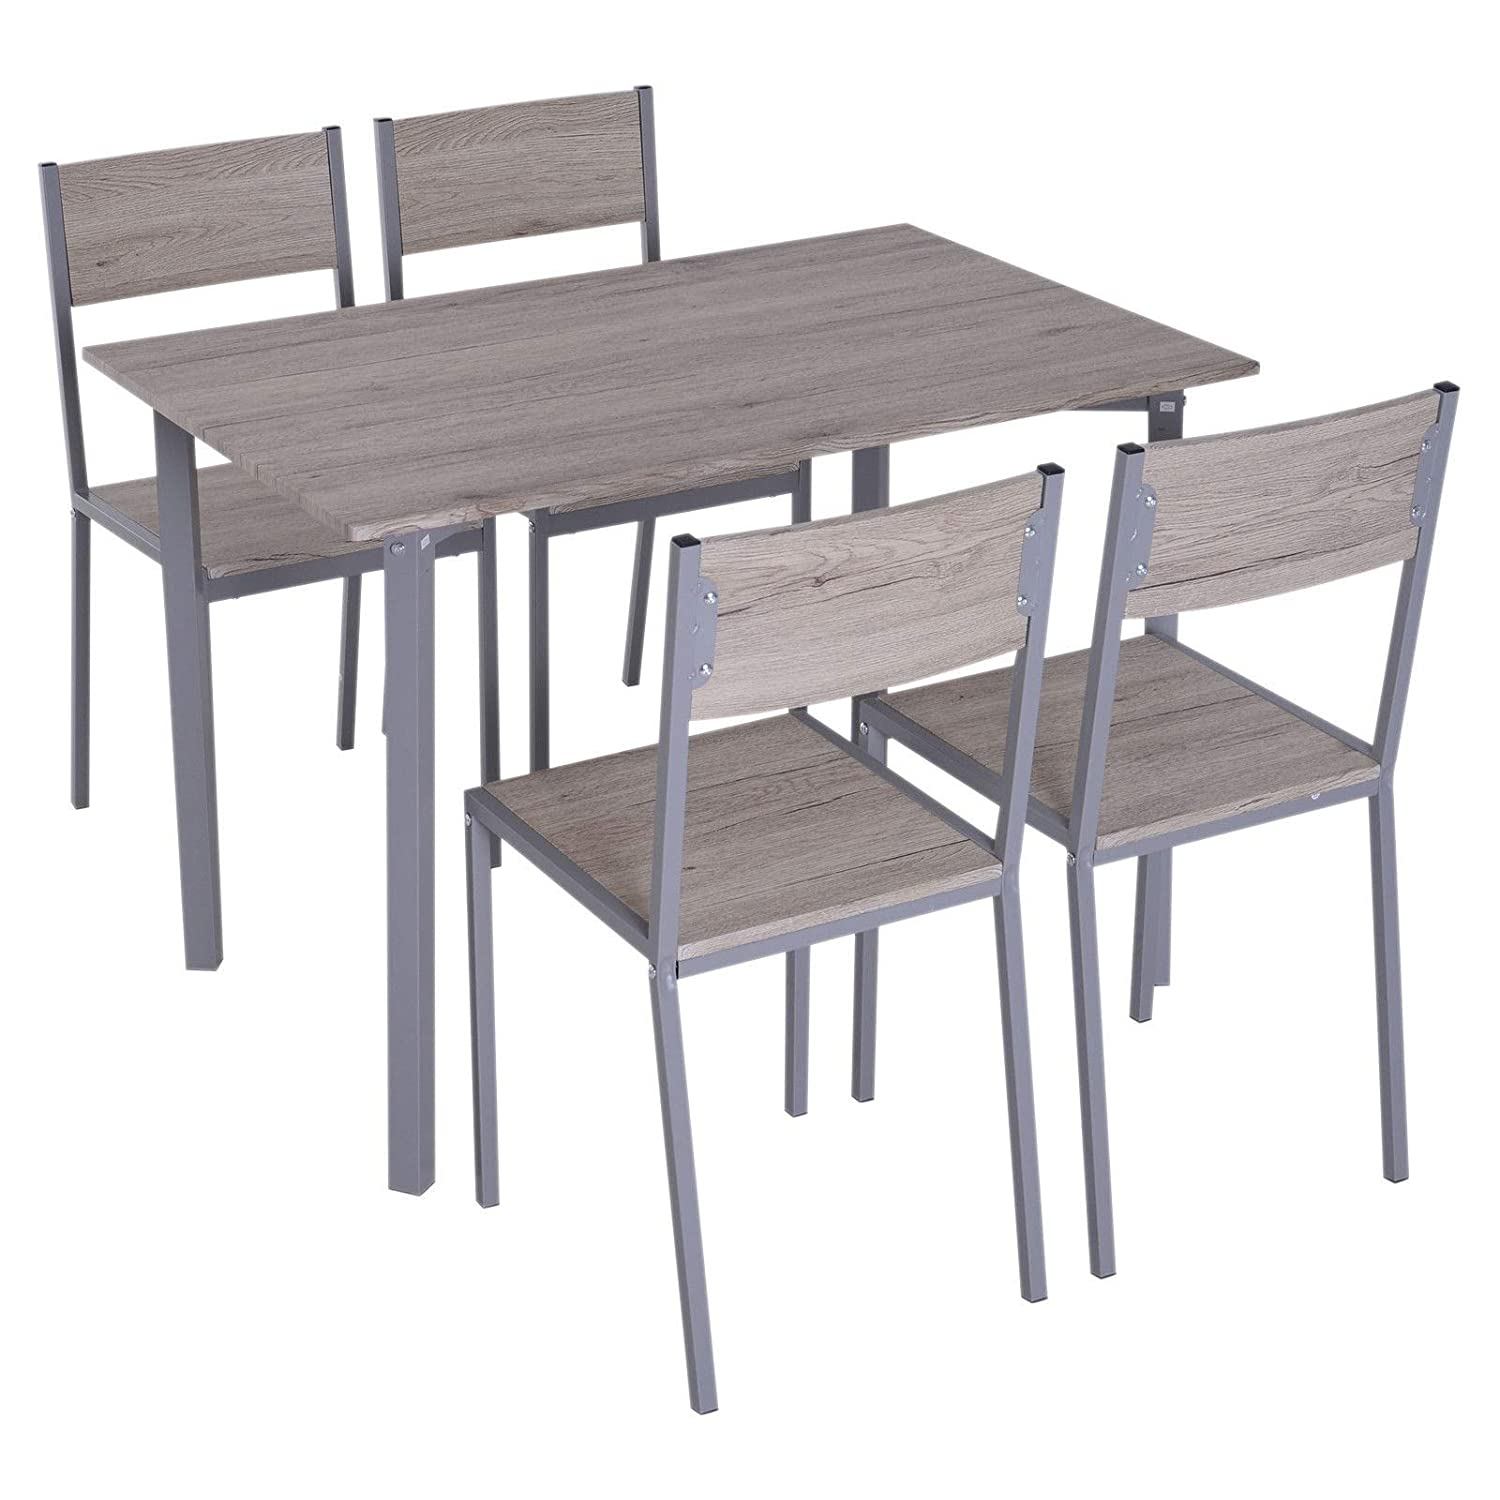 Natural Wooden 5 PCS Dining Set 1 Table 4 Comfortable High Back Armless Chairs Grey Steel Frame Construction Breakfast Lunch Dinner Home Kitchen Nook Dining Room Restaurant Pubs Furniture Décor